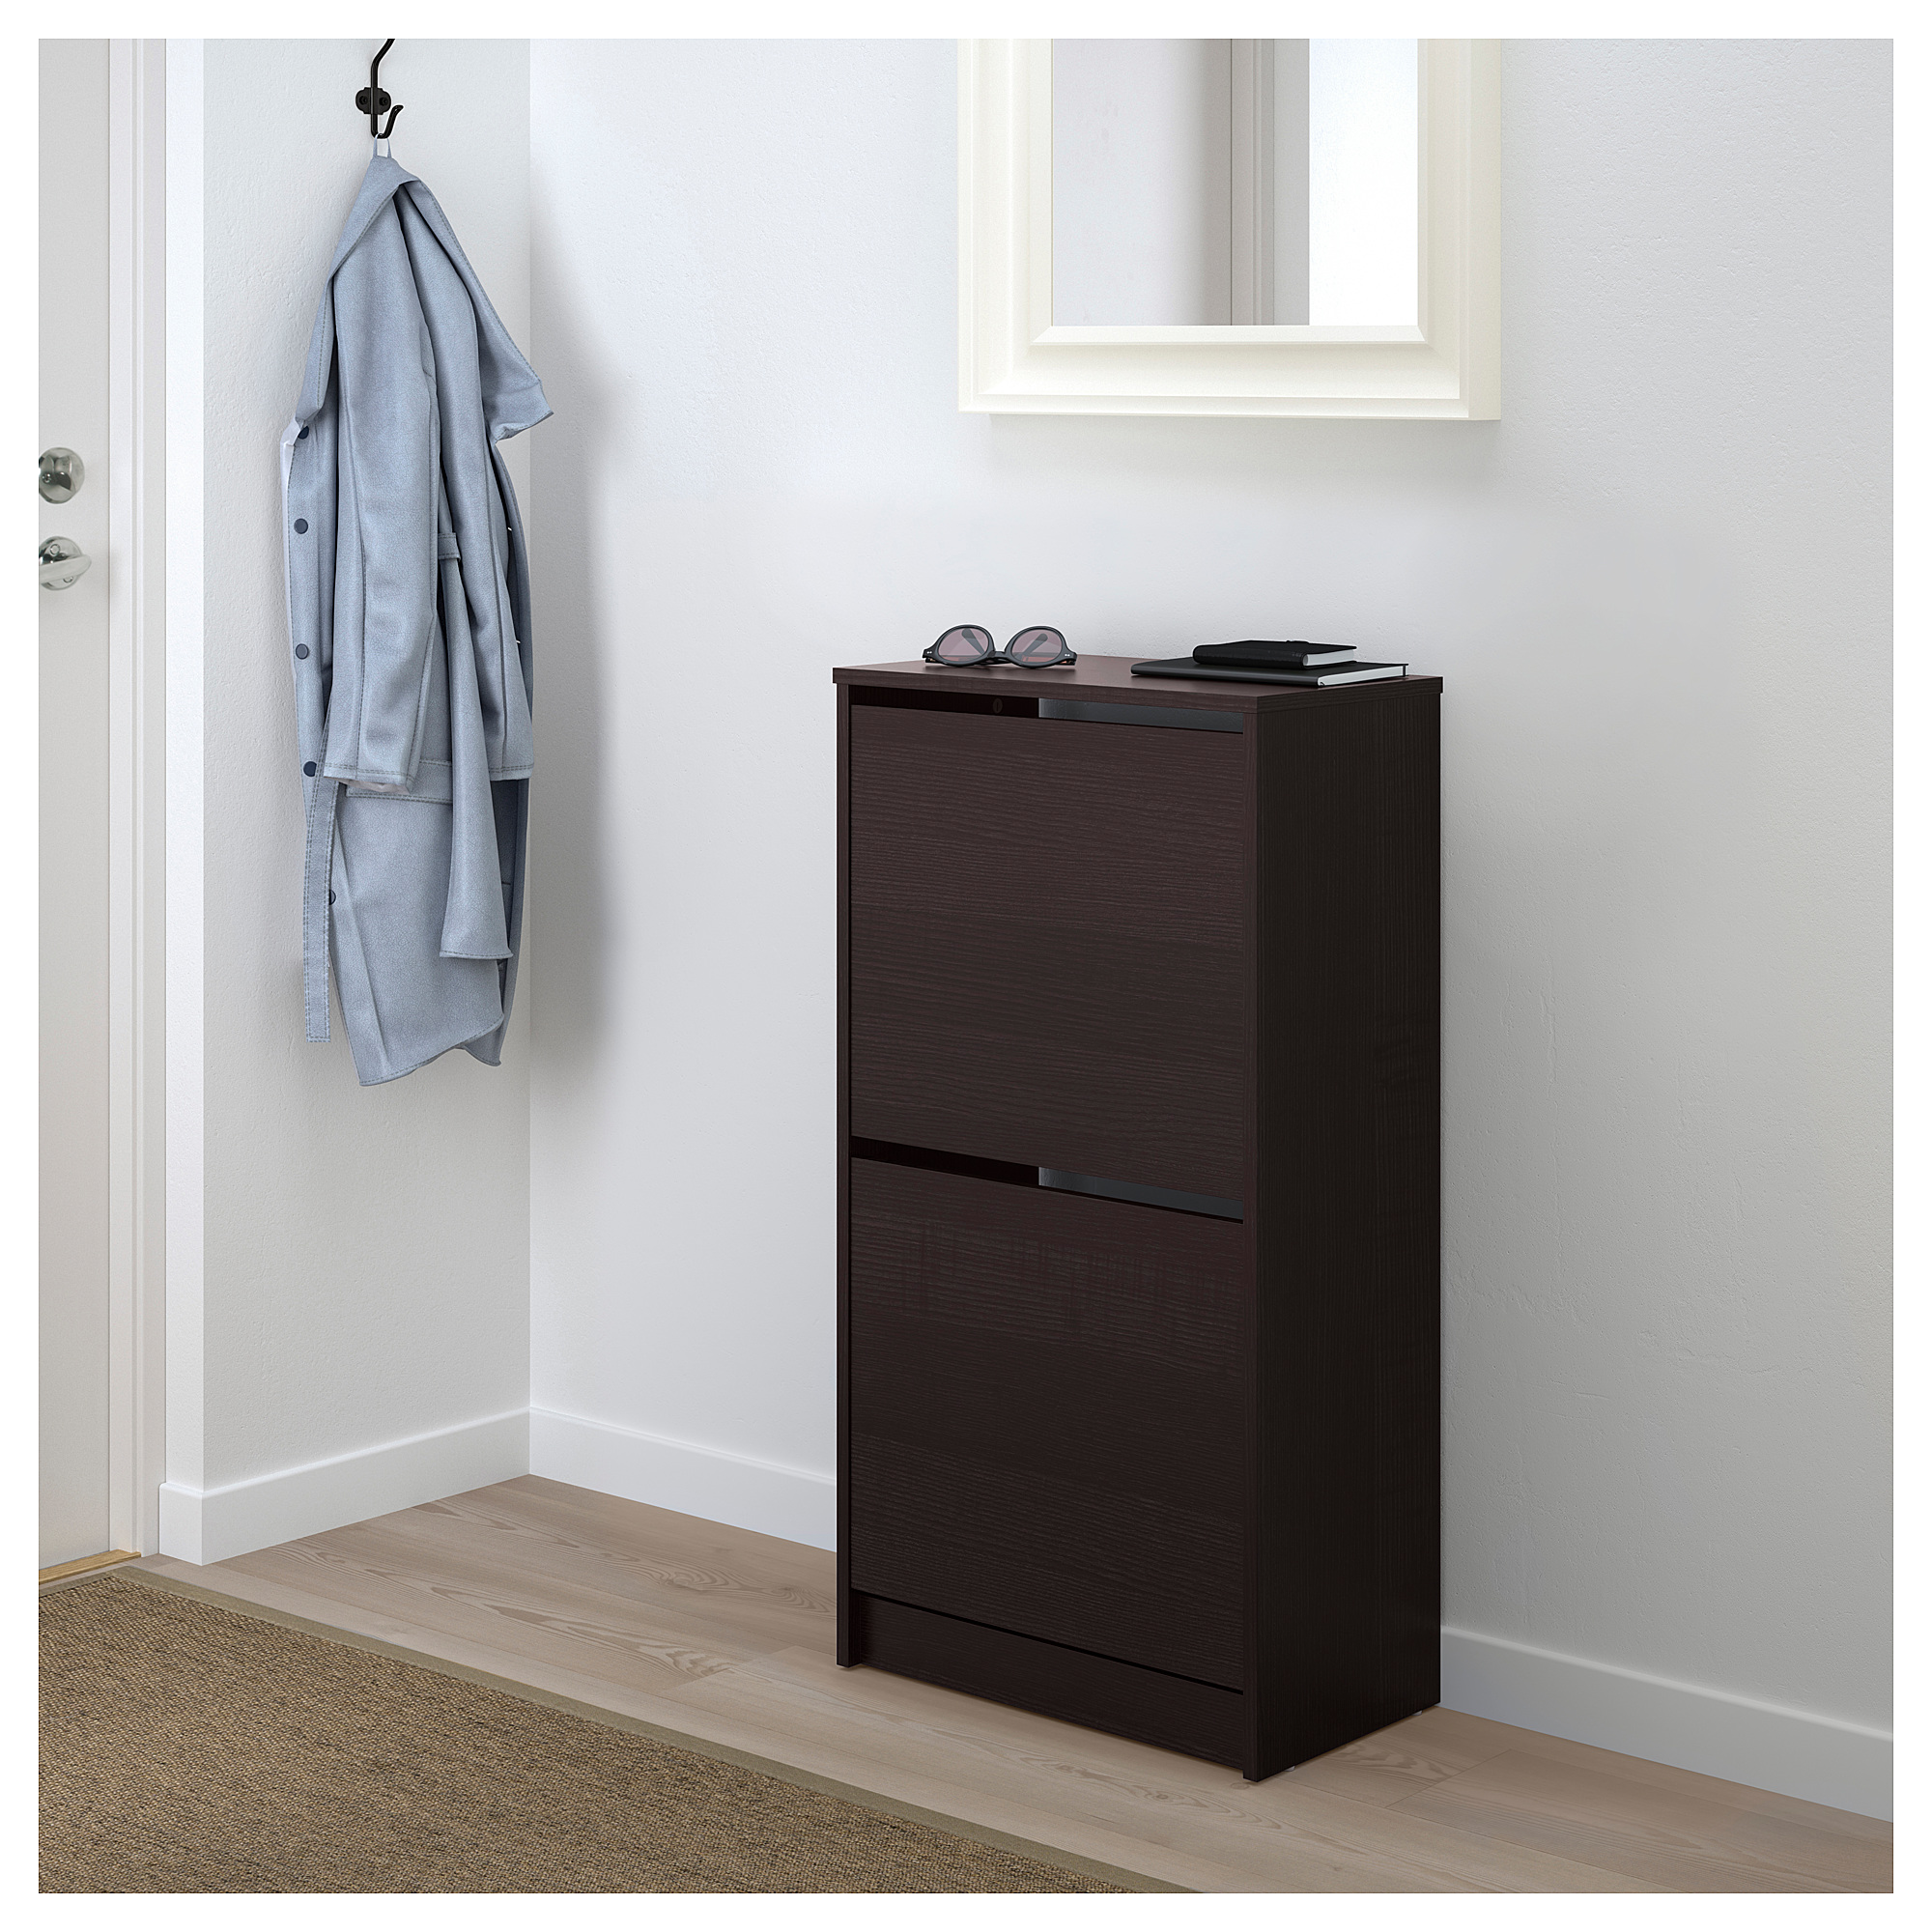 Bissa Shoe Cabinet With 2 Compartments Black Brown Ikea Indonesia